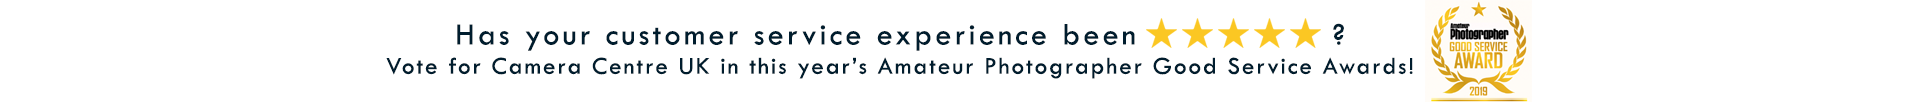 Vote For Camera Centre UK In The Amateur Photographer Good Service Awards